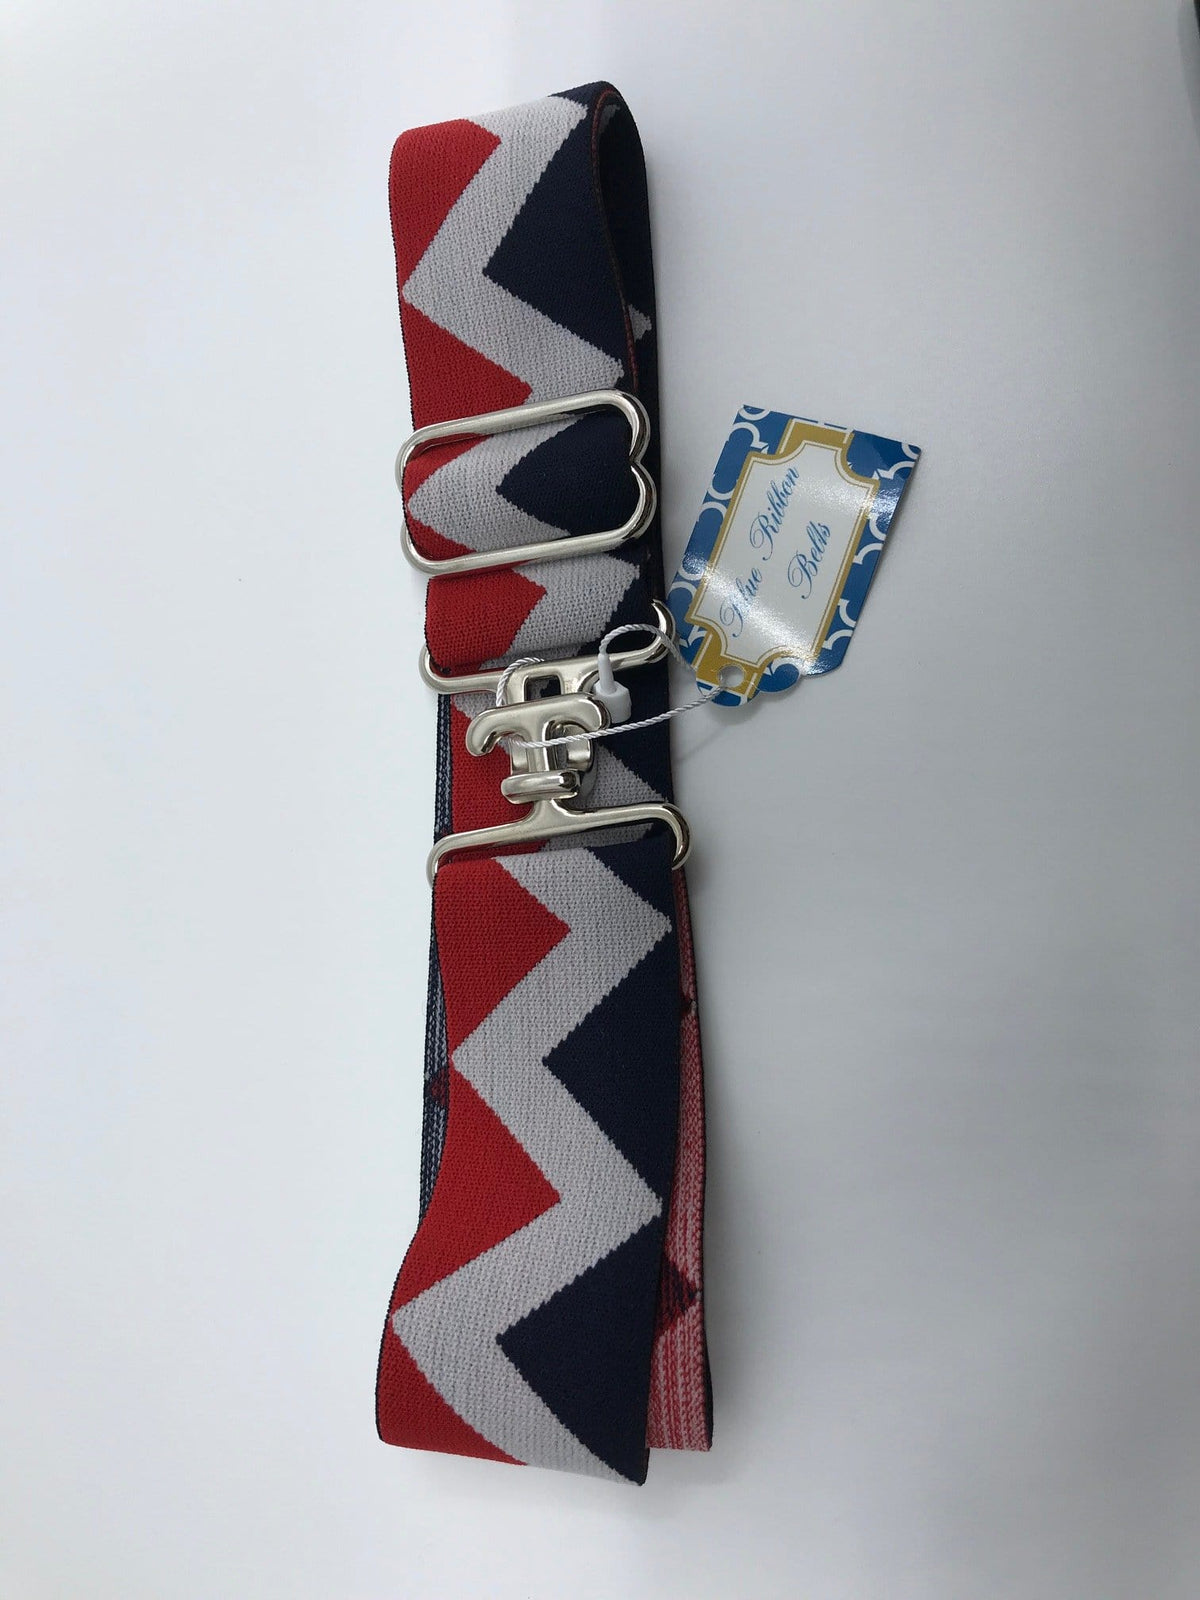 "Blue Ribbon Belts Belt Red/White/Navy ZigZag Blue Ribbon Belts 1.5"" equestrian team apparel online tack store mobile tack store custom farm apparel custom show stable clothing equestrian lifestyle horse show clothing riding clothes horses equestrian tack store"